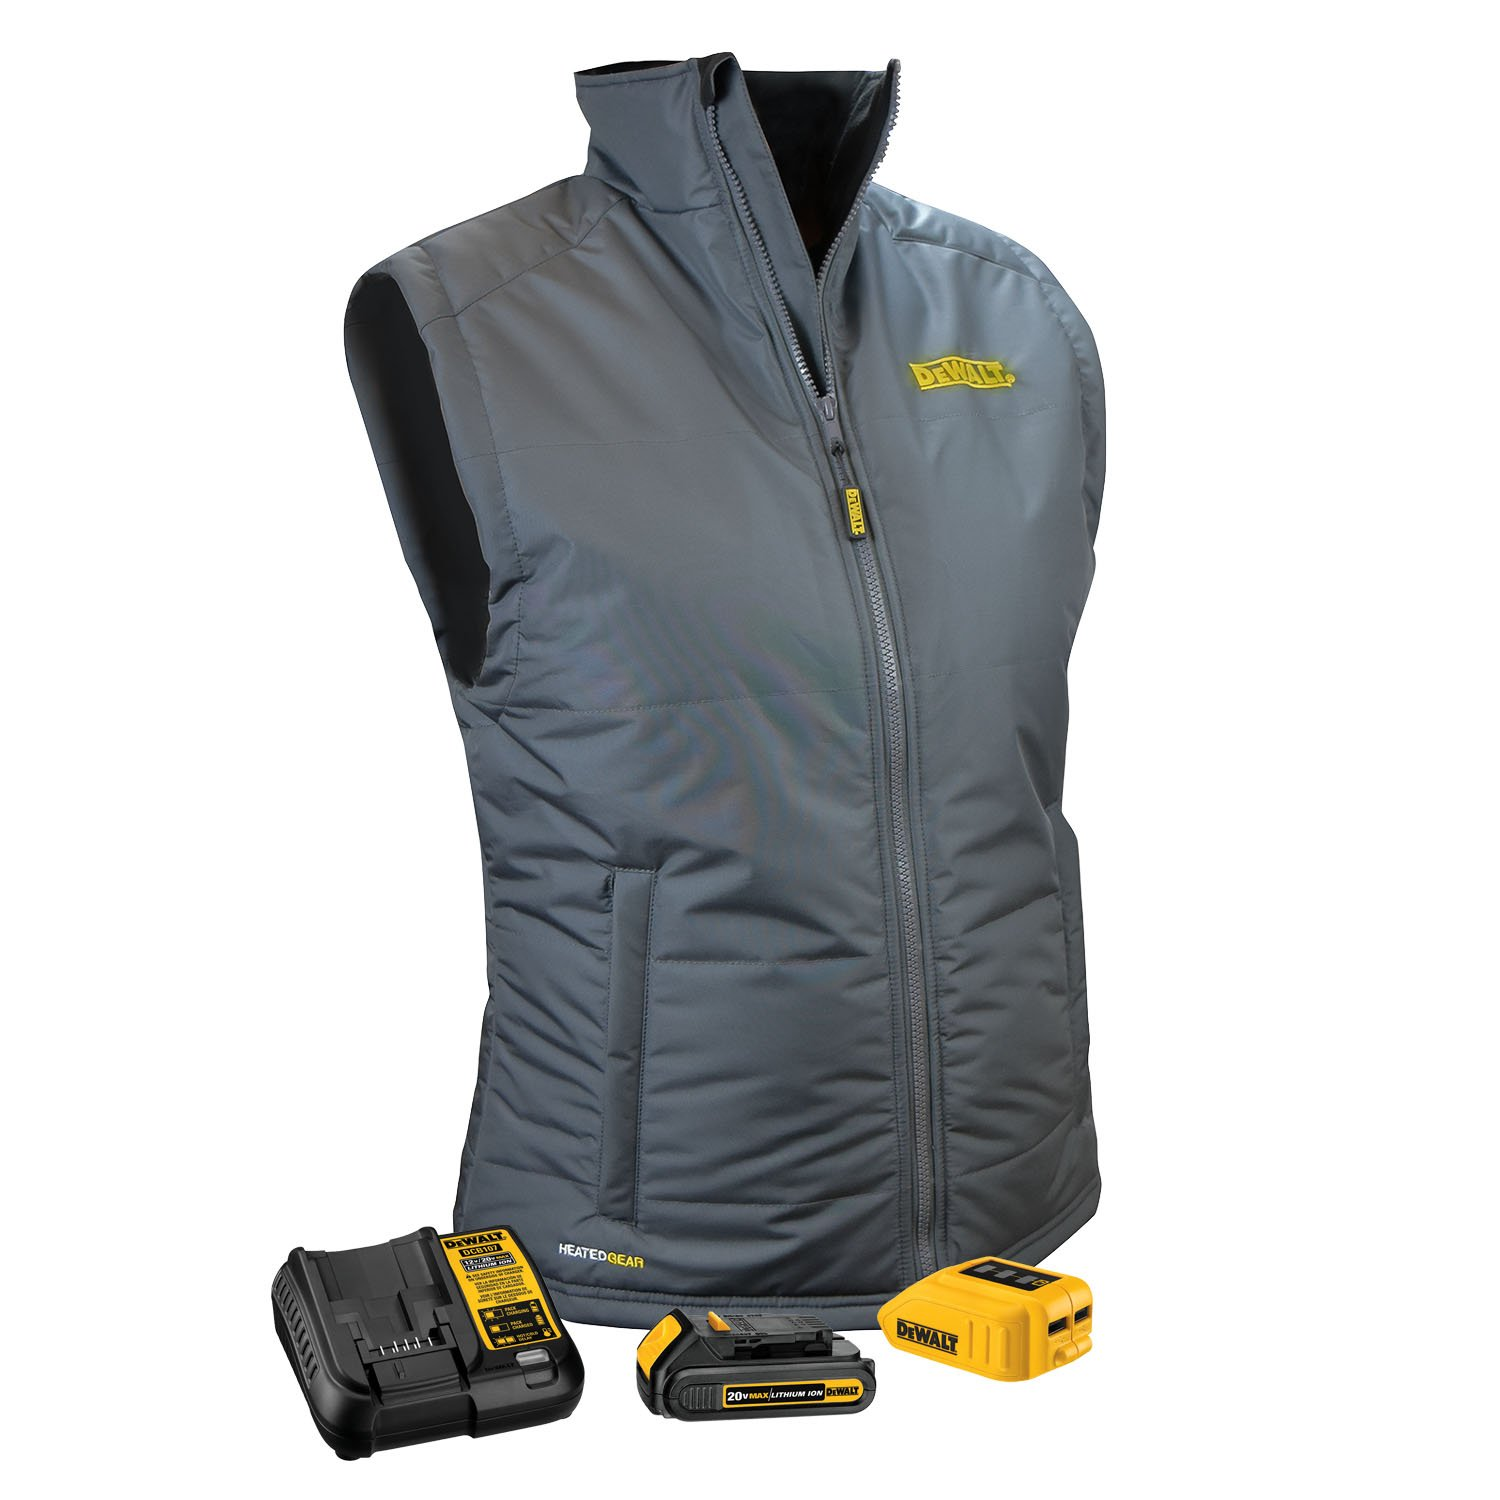 DEWALT DCHVL10C1-M Women's Heated Quilted Vest , Gray, Medium